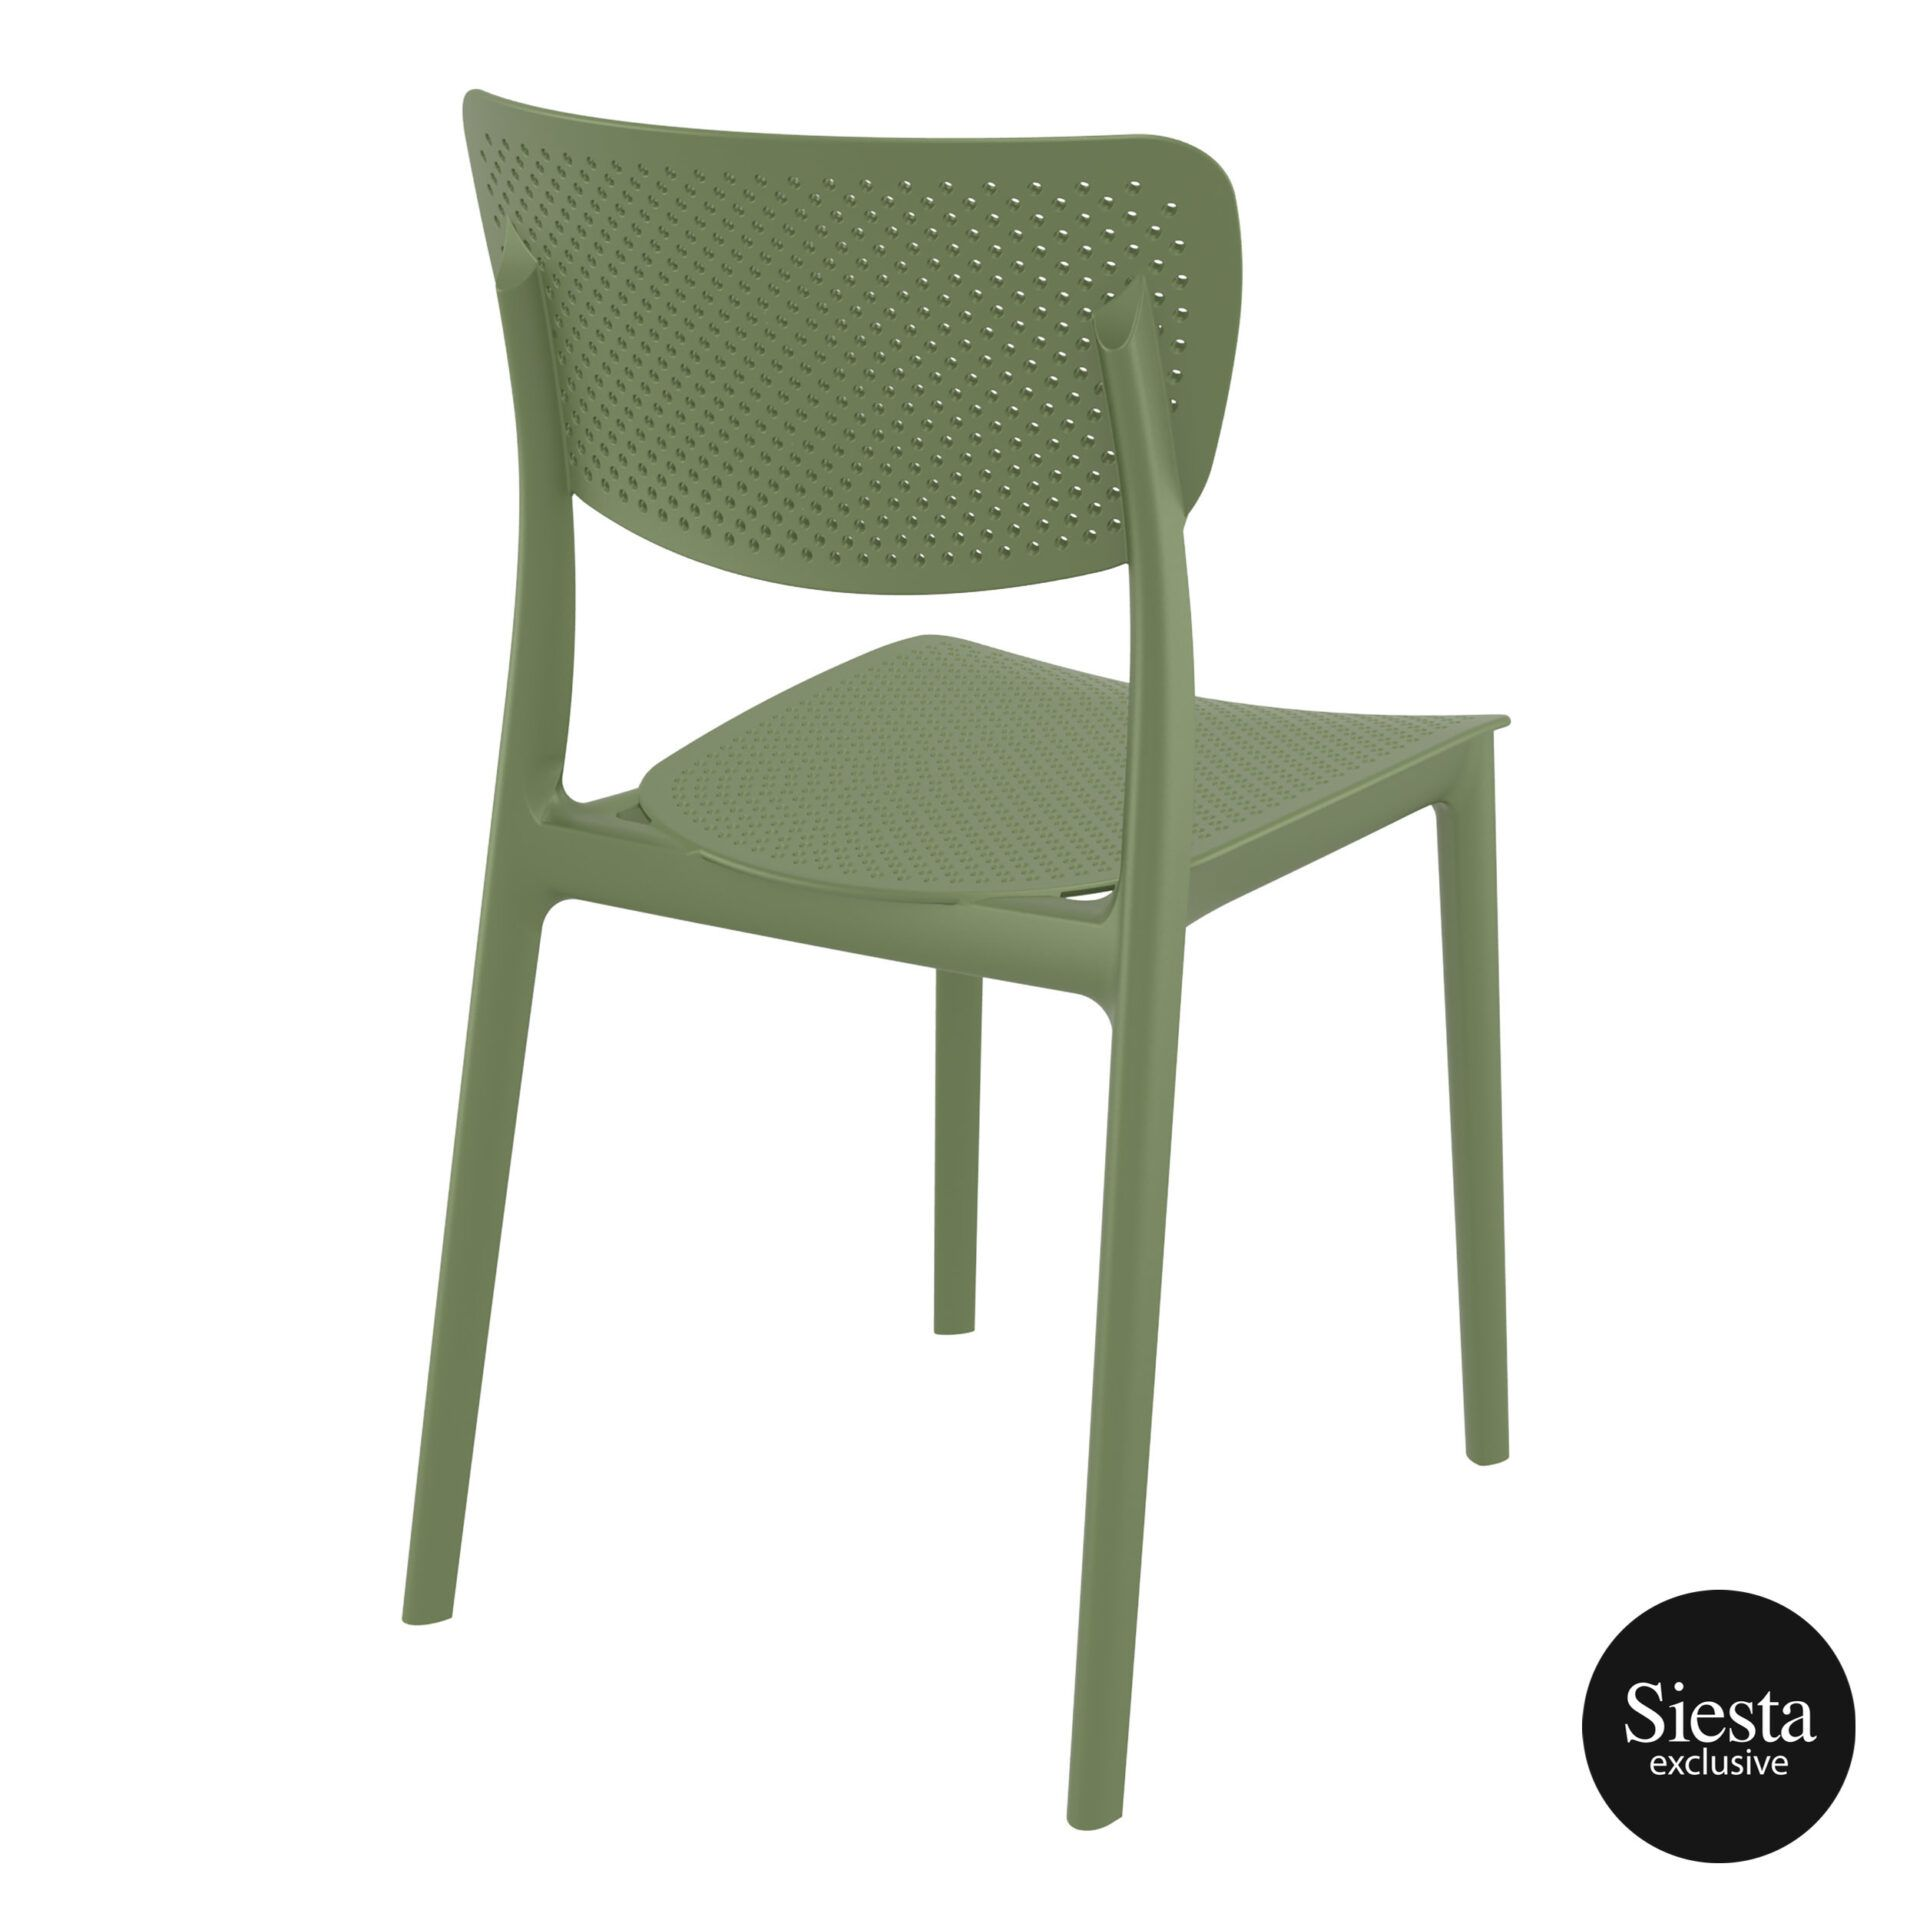 polypropylene hospitality seating lucy chair olive green back side 1